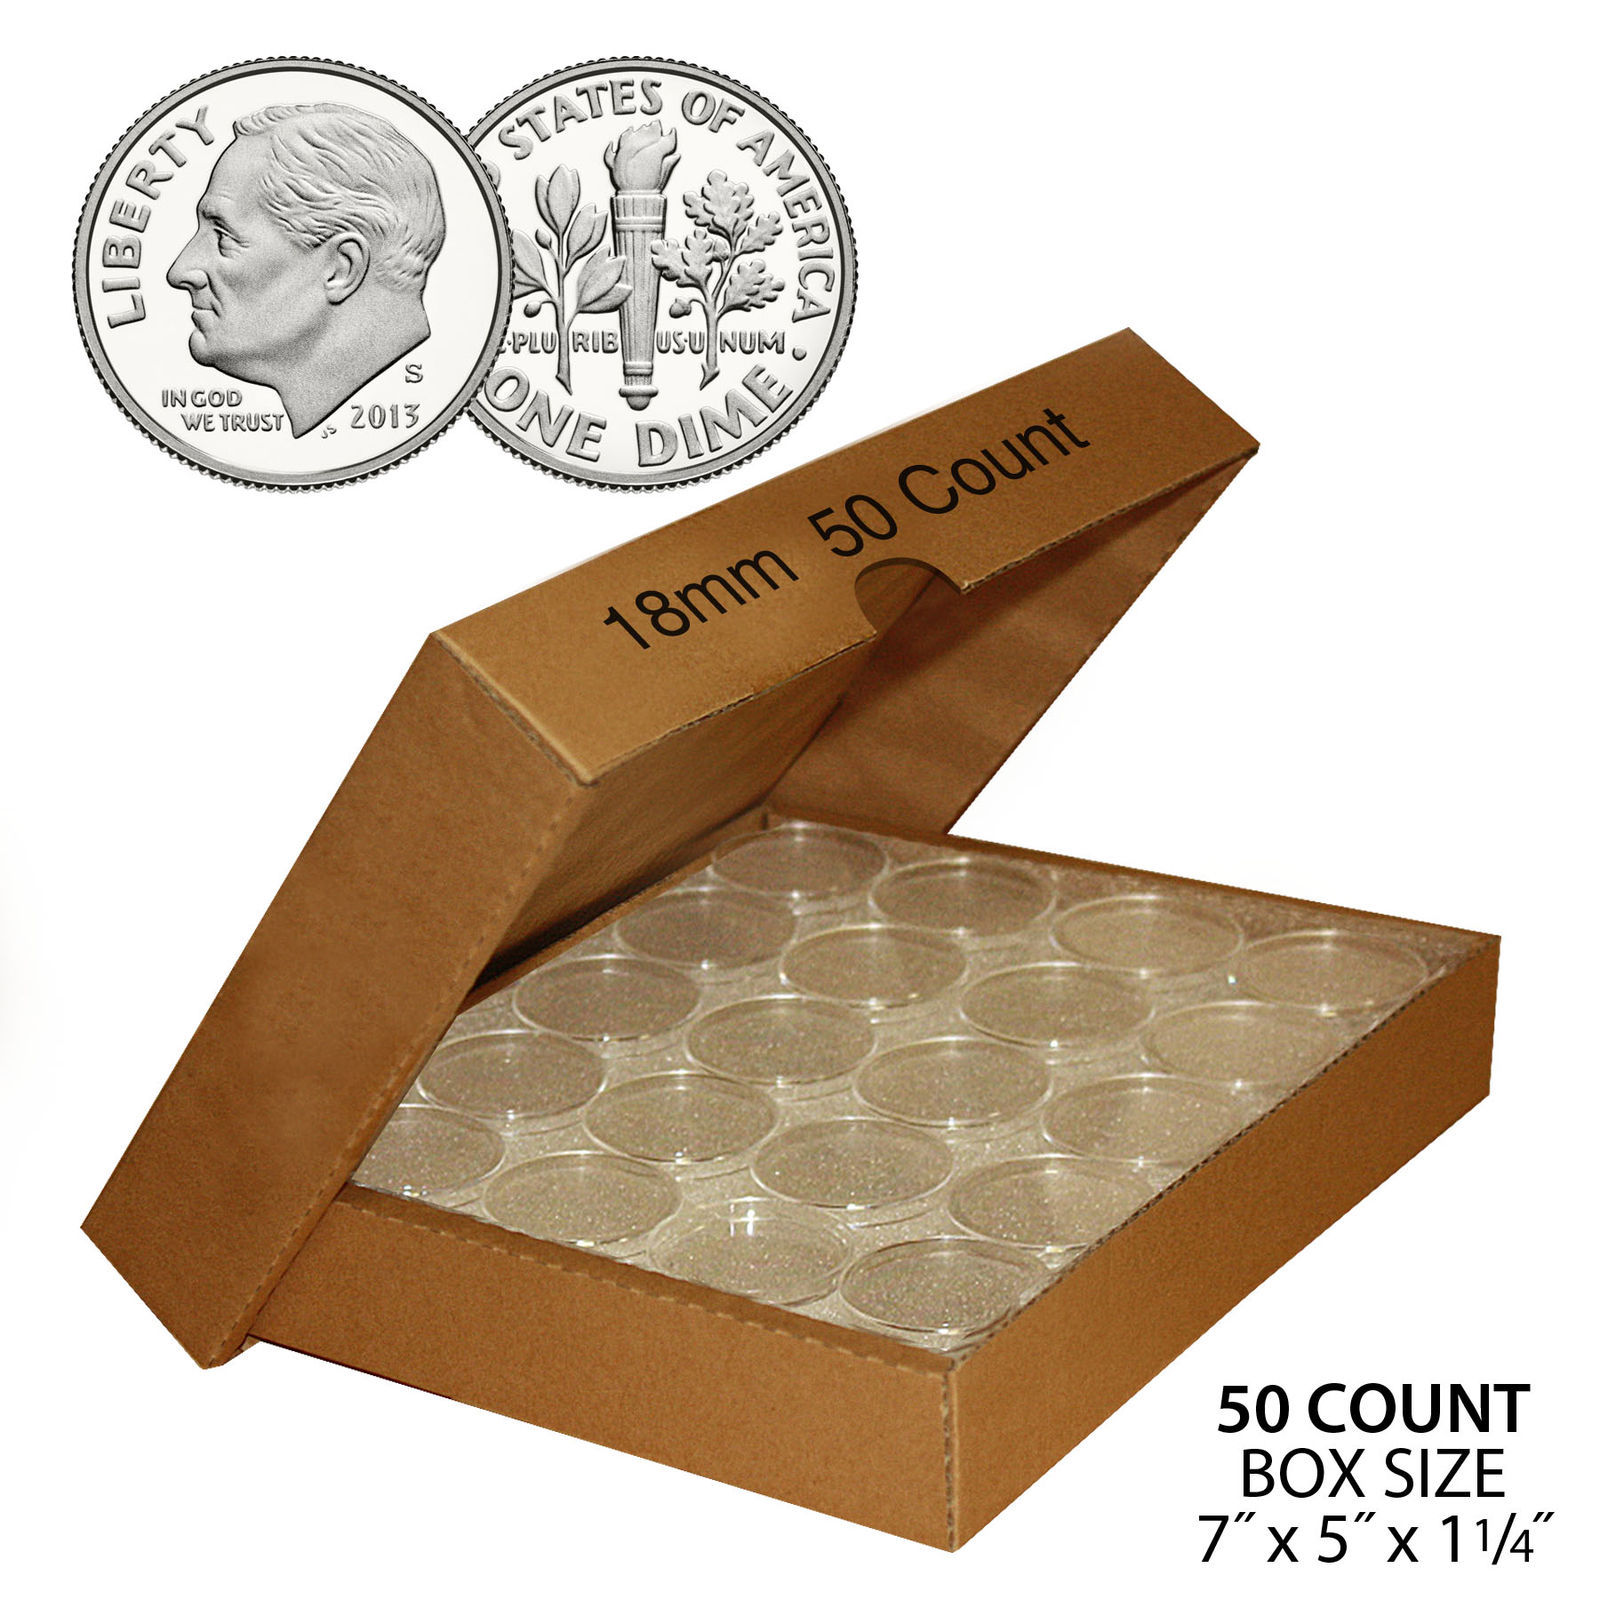 Primary image for 50 DIME Direct-Fit Airtight 18mm Coin Capsule Holder DIMES (QTY: 50) with BOX